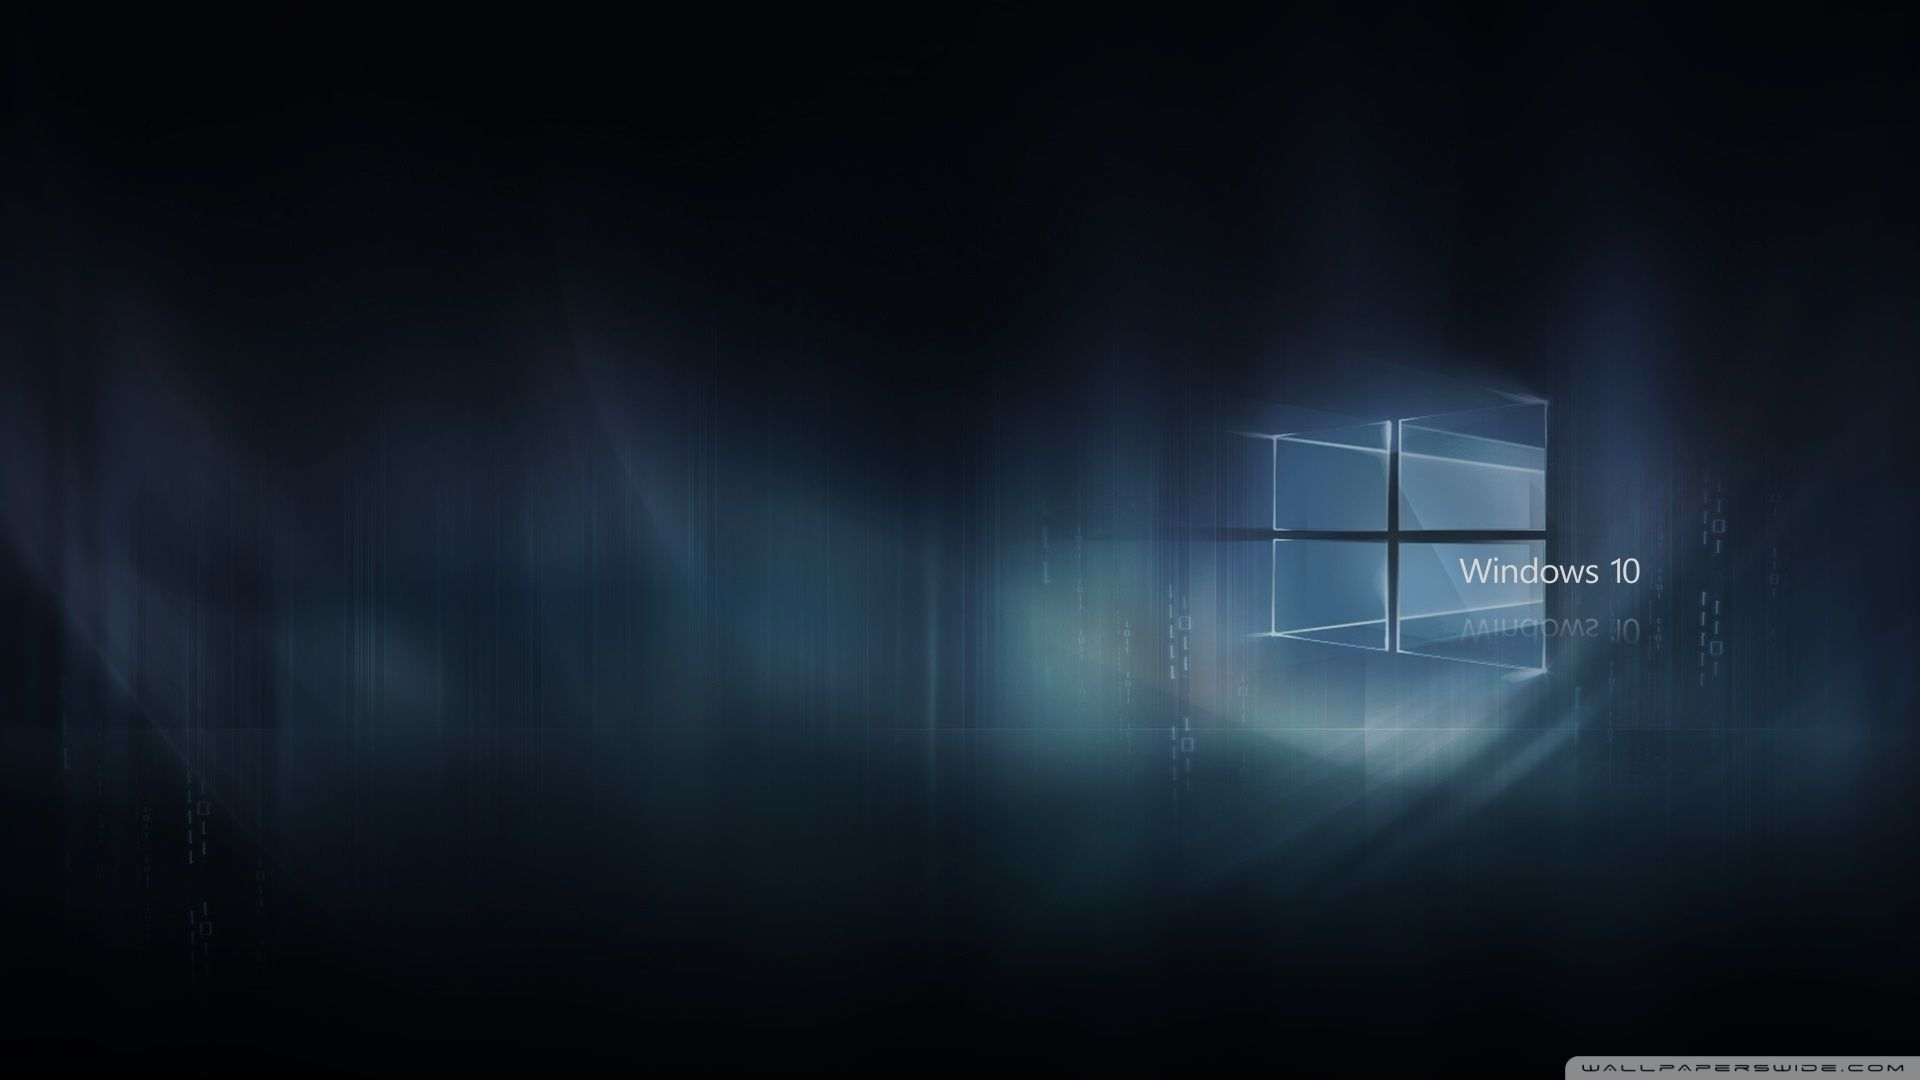 Windows 10 HD Wallpapers - Top Free